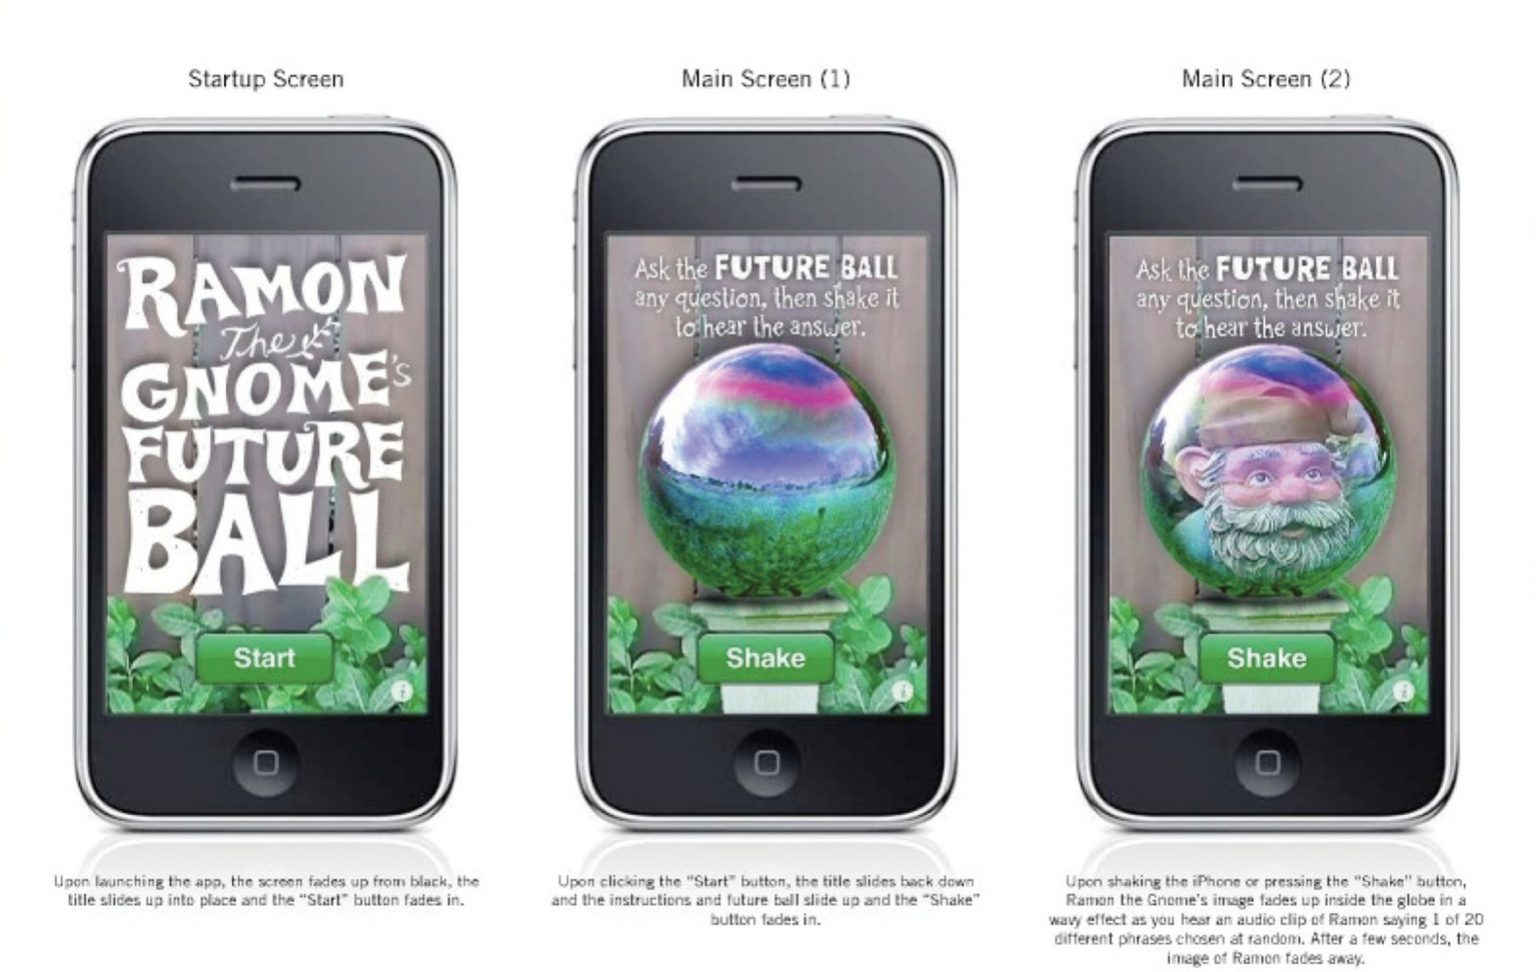 Future ball iphone app   A fun, three minute time-waster game with your favorite garden gnome.